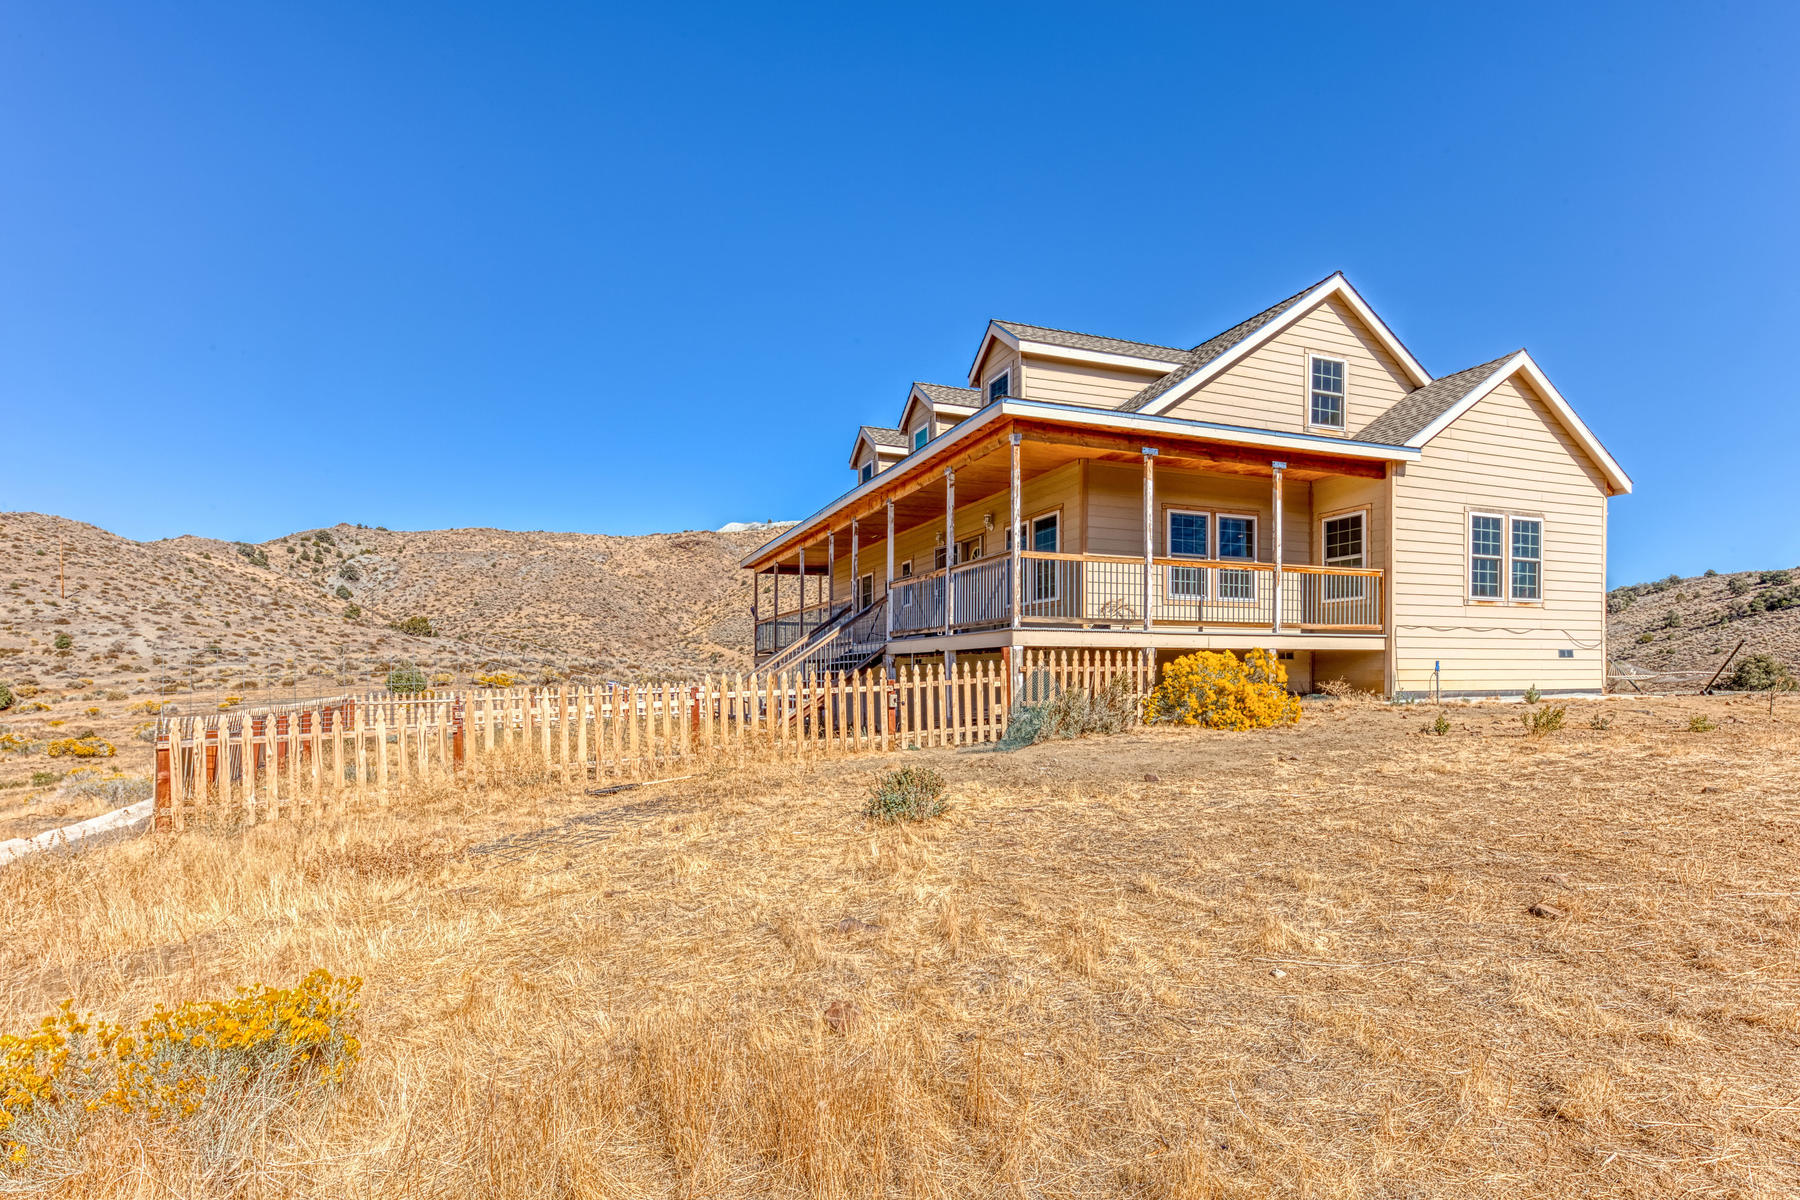 Single Family Home for Active at 2850 Slippery Gulch, Virginia City, Nevada 2850 Slippery Gulch Virginia City, Nevada 89440 United States